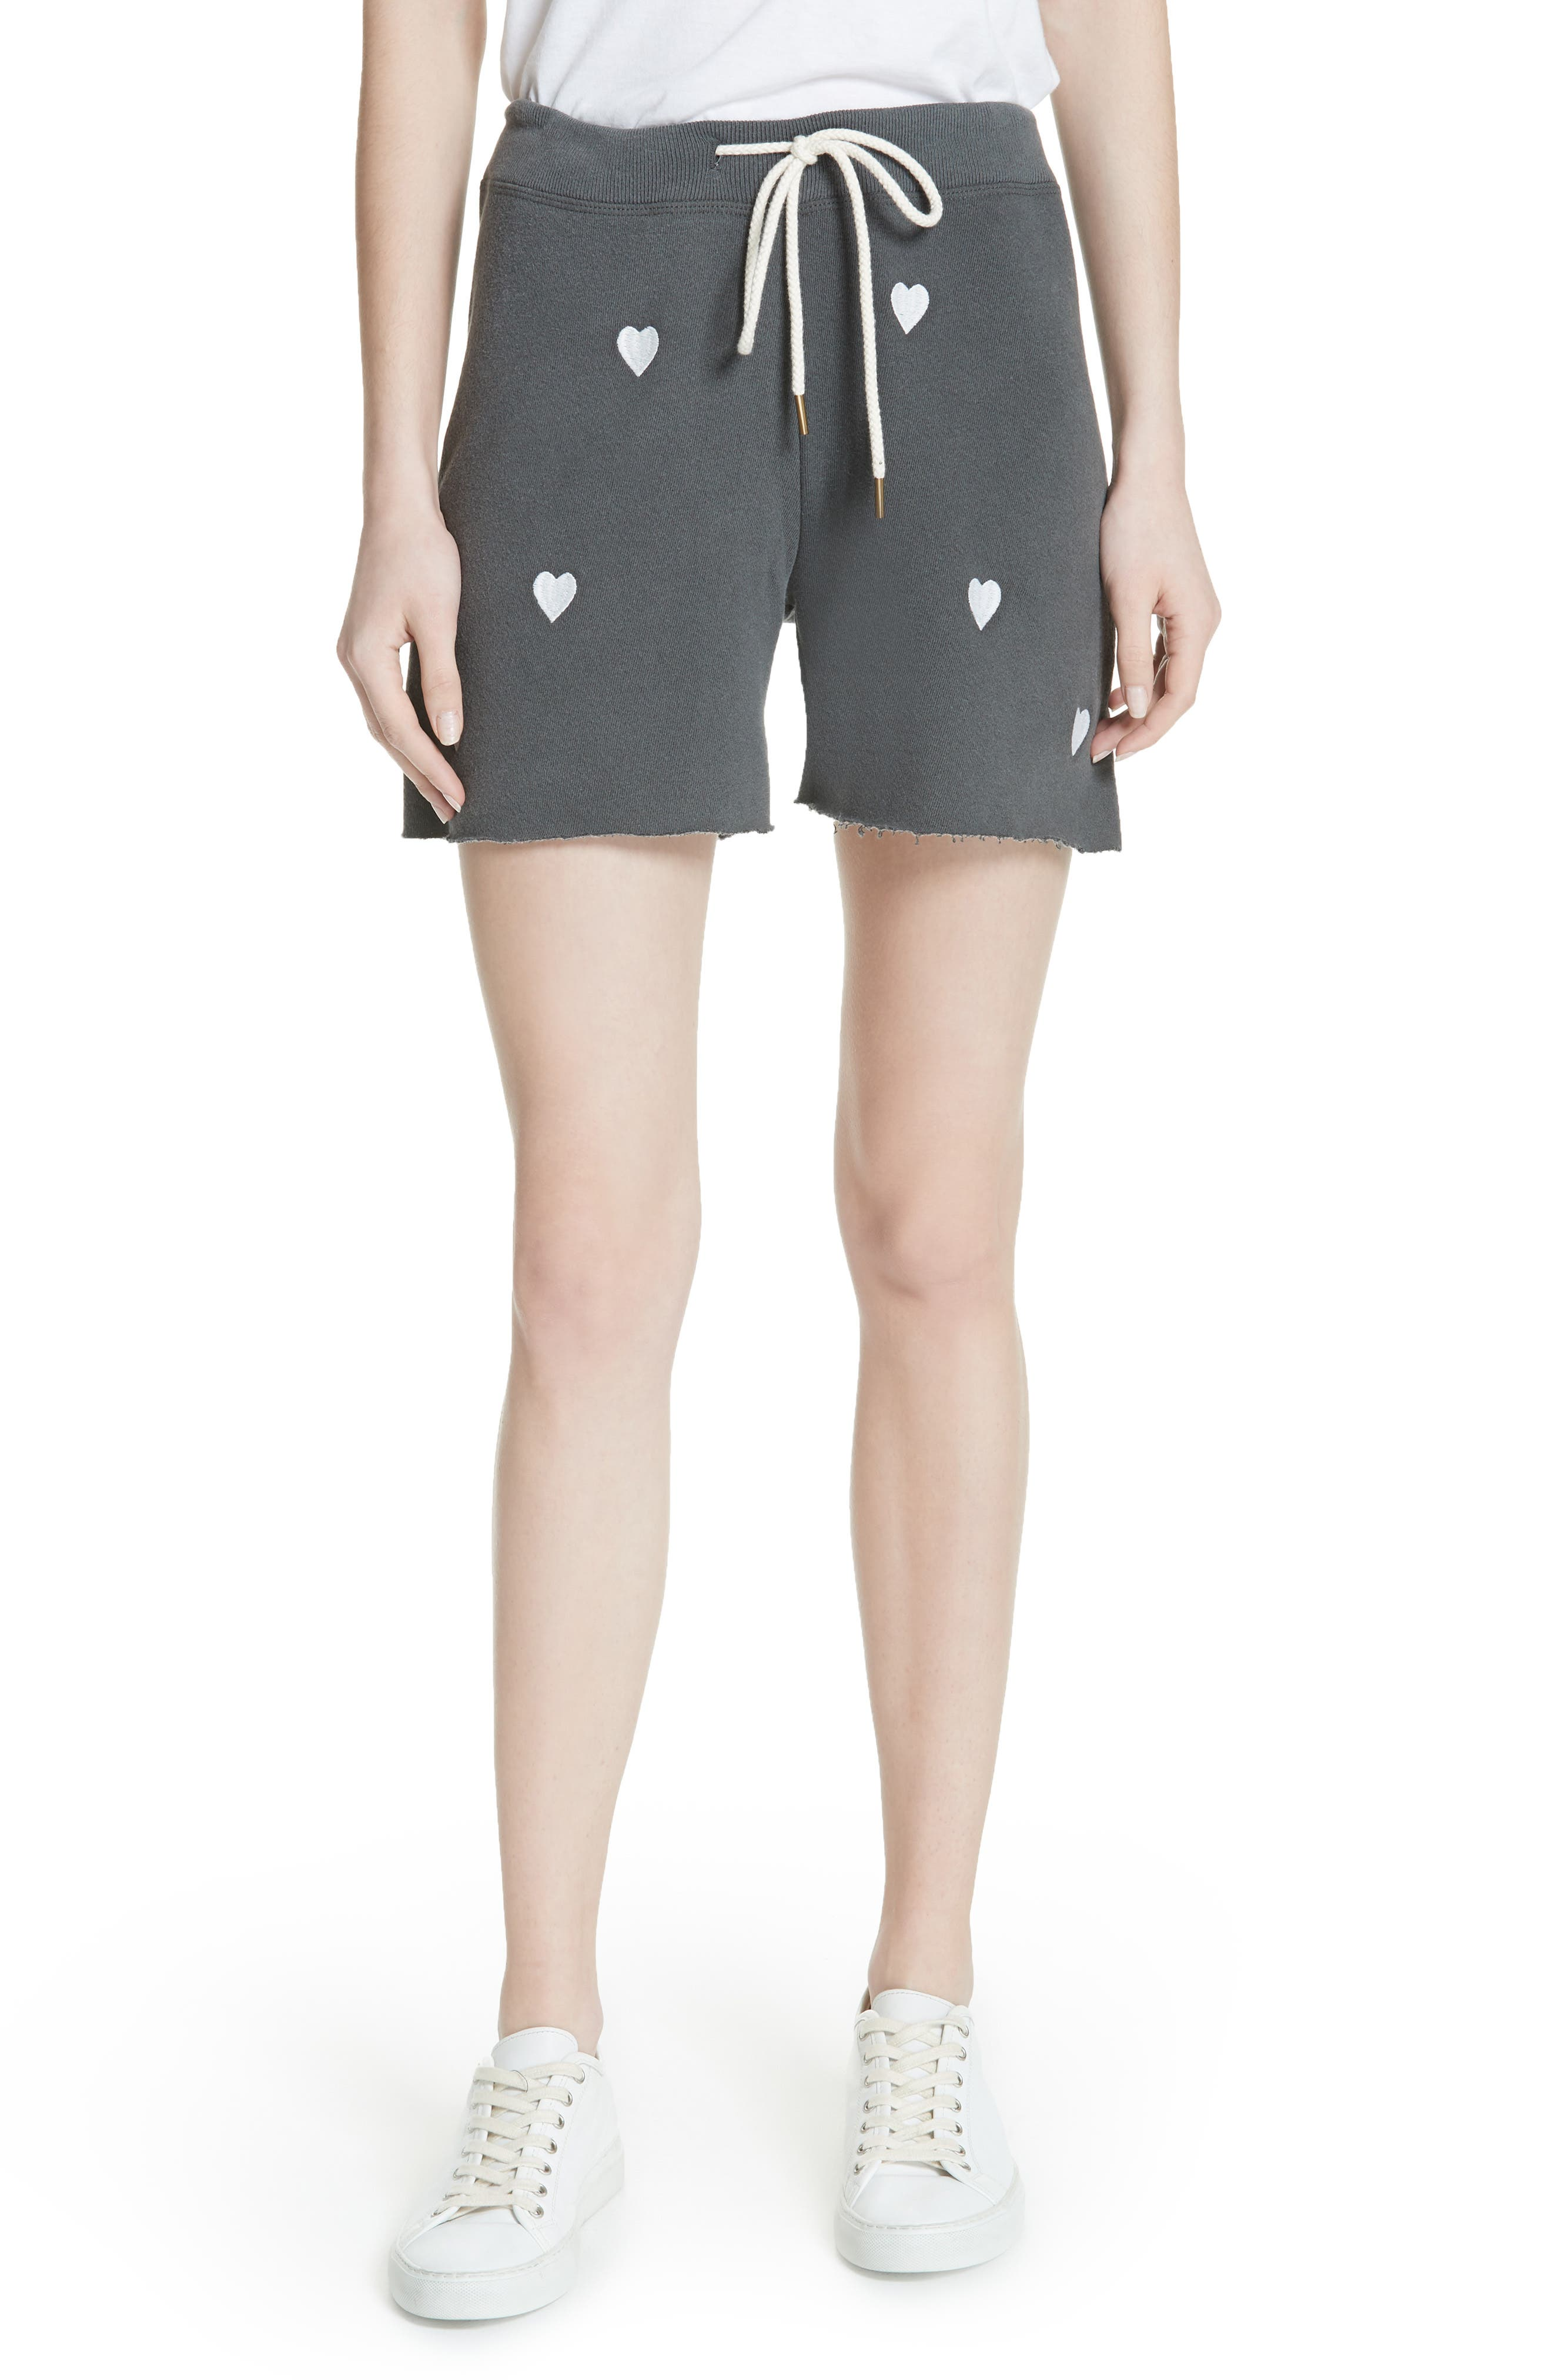 The Sweat Shorts,                         Main,                         color, Washed Black/ White Hearts